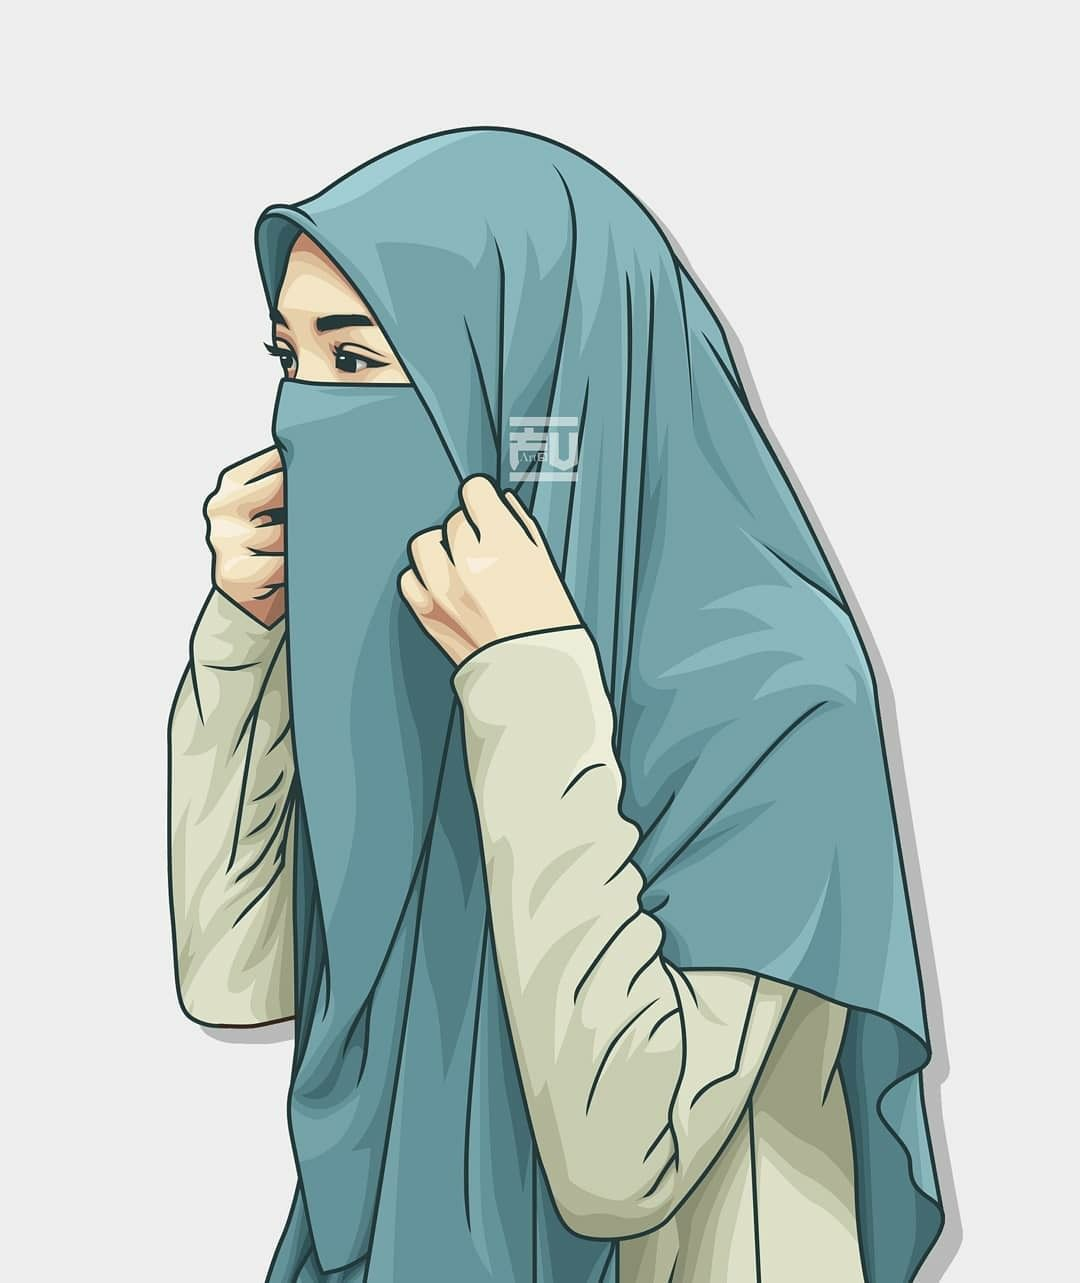 Pin By Raw Organics Co On Artwork Hijab Cartoon Anime Muslimah Hijab Drawing